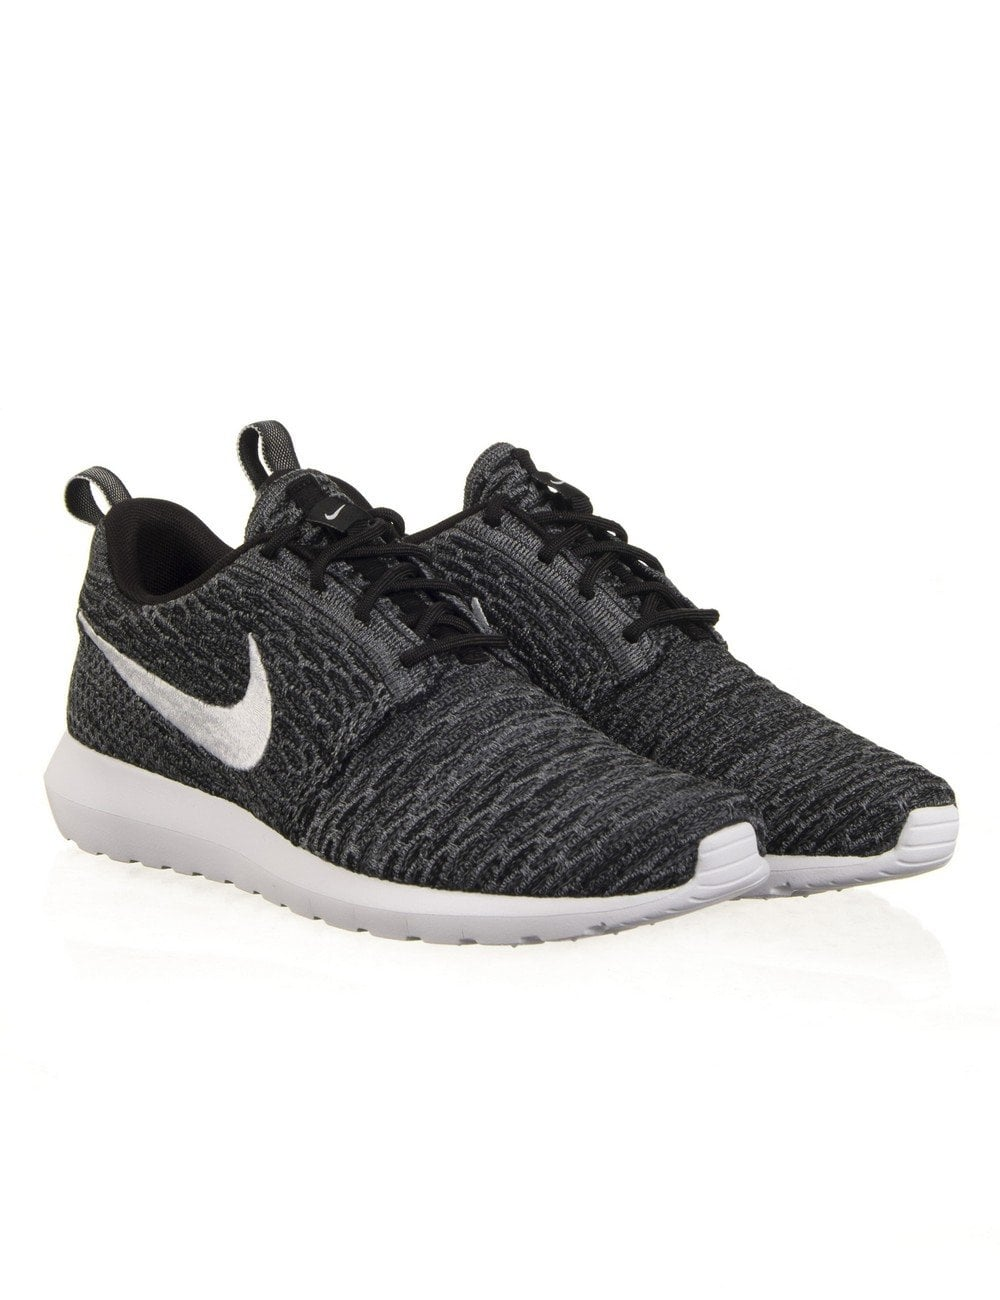 Shoes Run Run Run Roshe Flyknit Roshe Roshe Flyknit BlackWhite Shoes BlackWhite Flyknit wkiuOPXZT